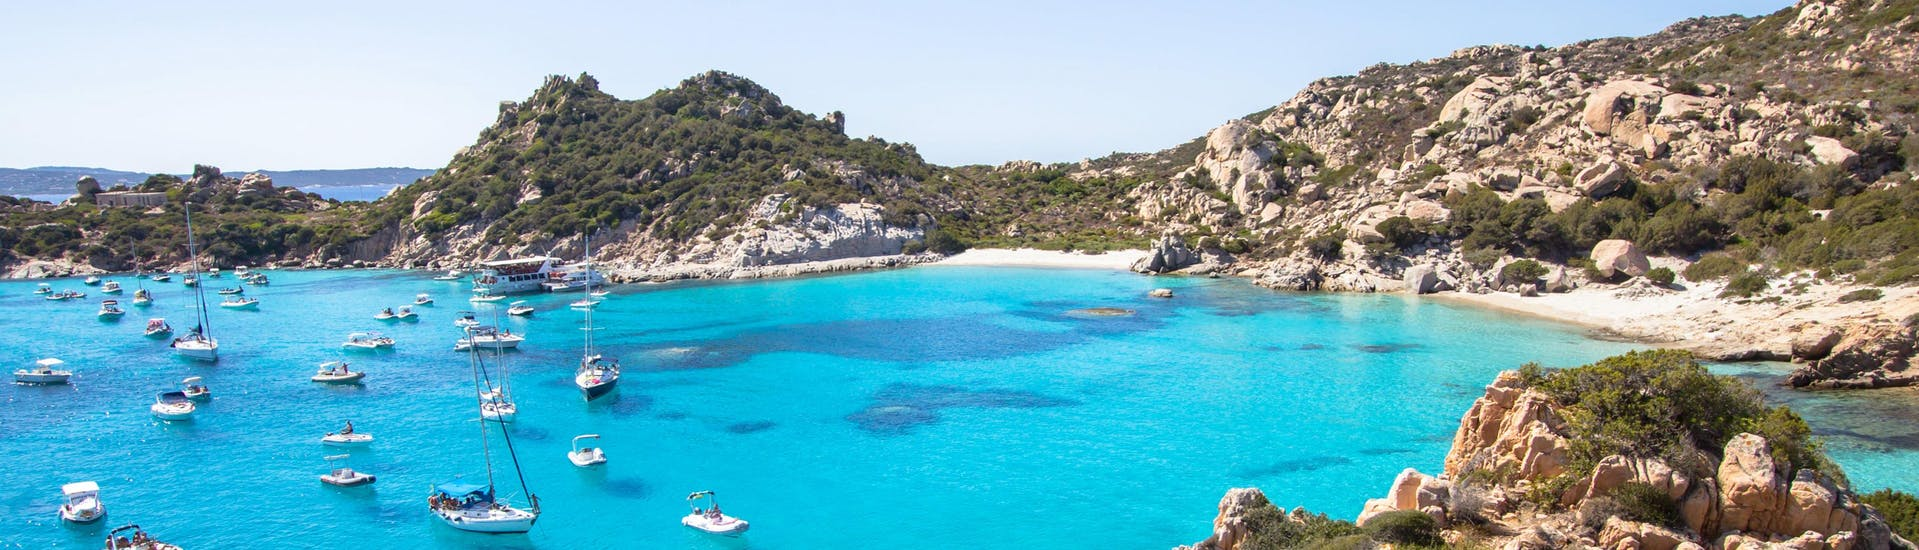 An image of the beautiful Cala Corsada, one of the places you get to visit on a boat tour in La Maddalena.